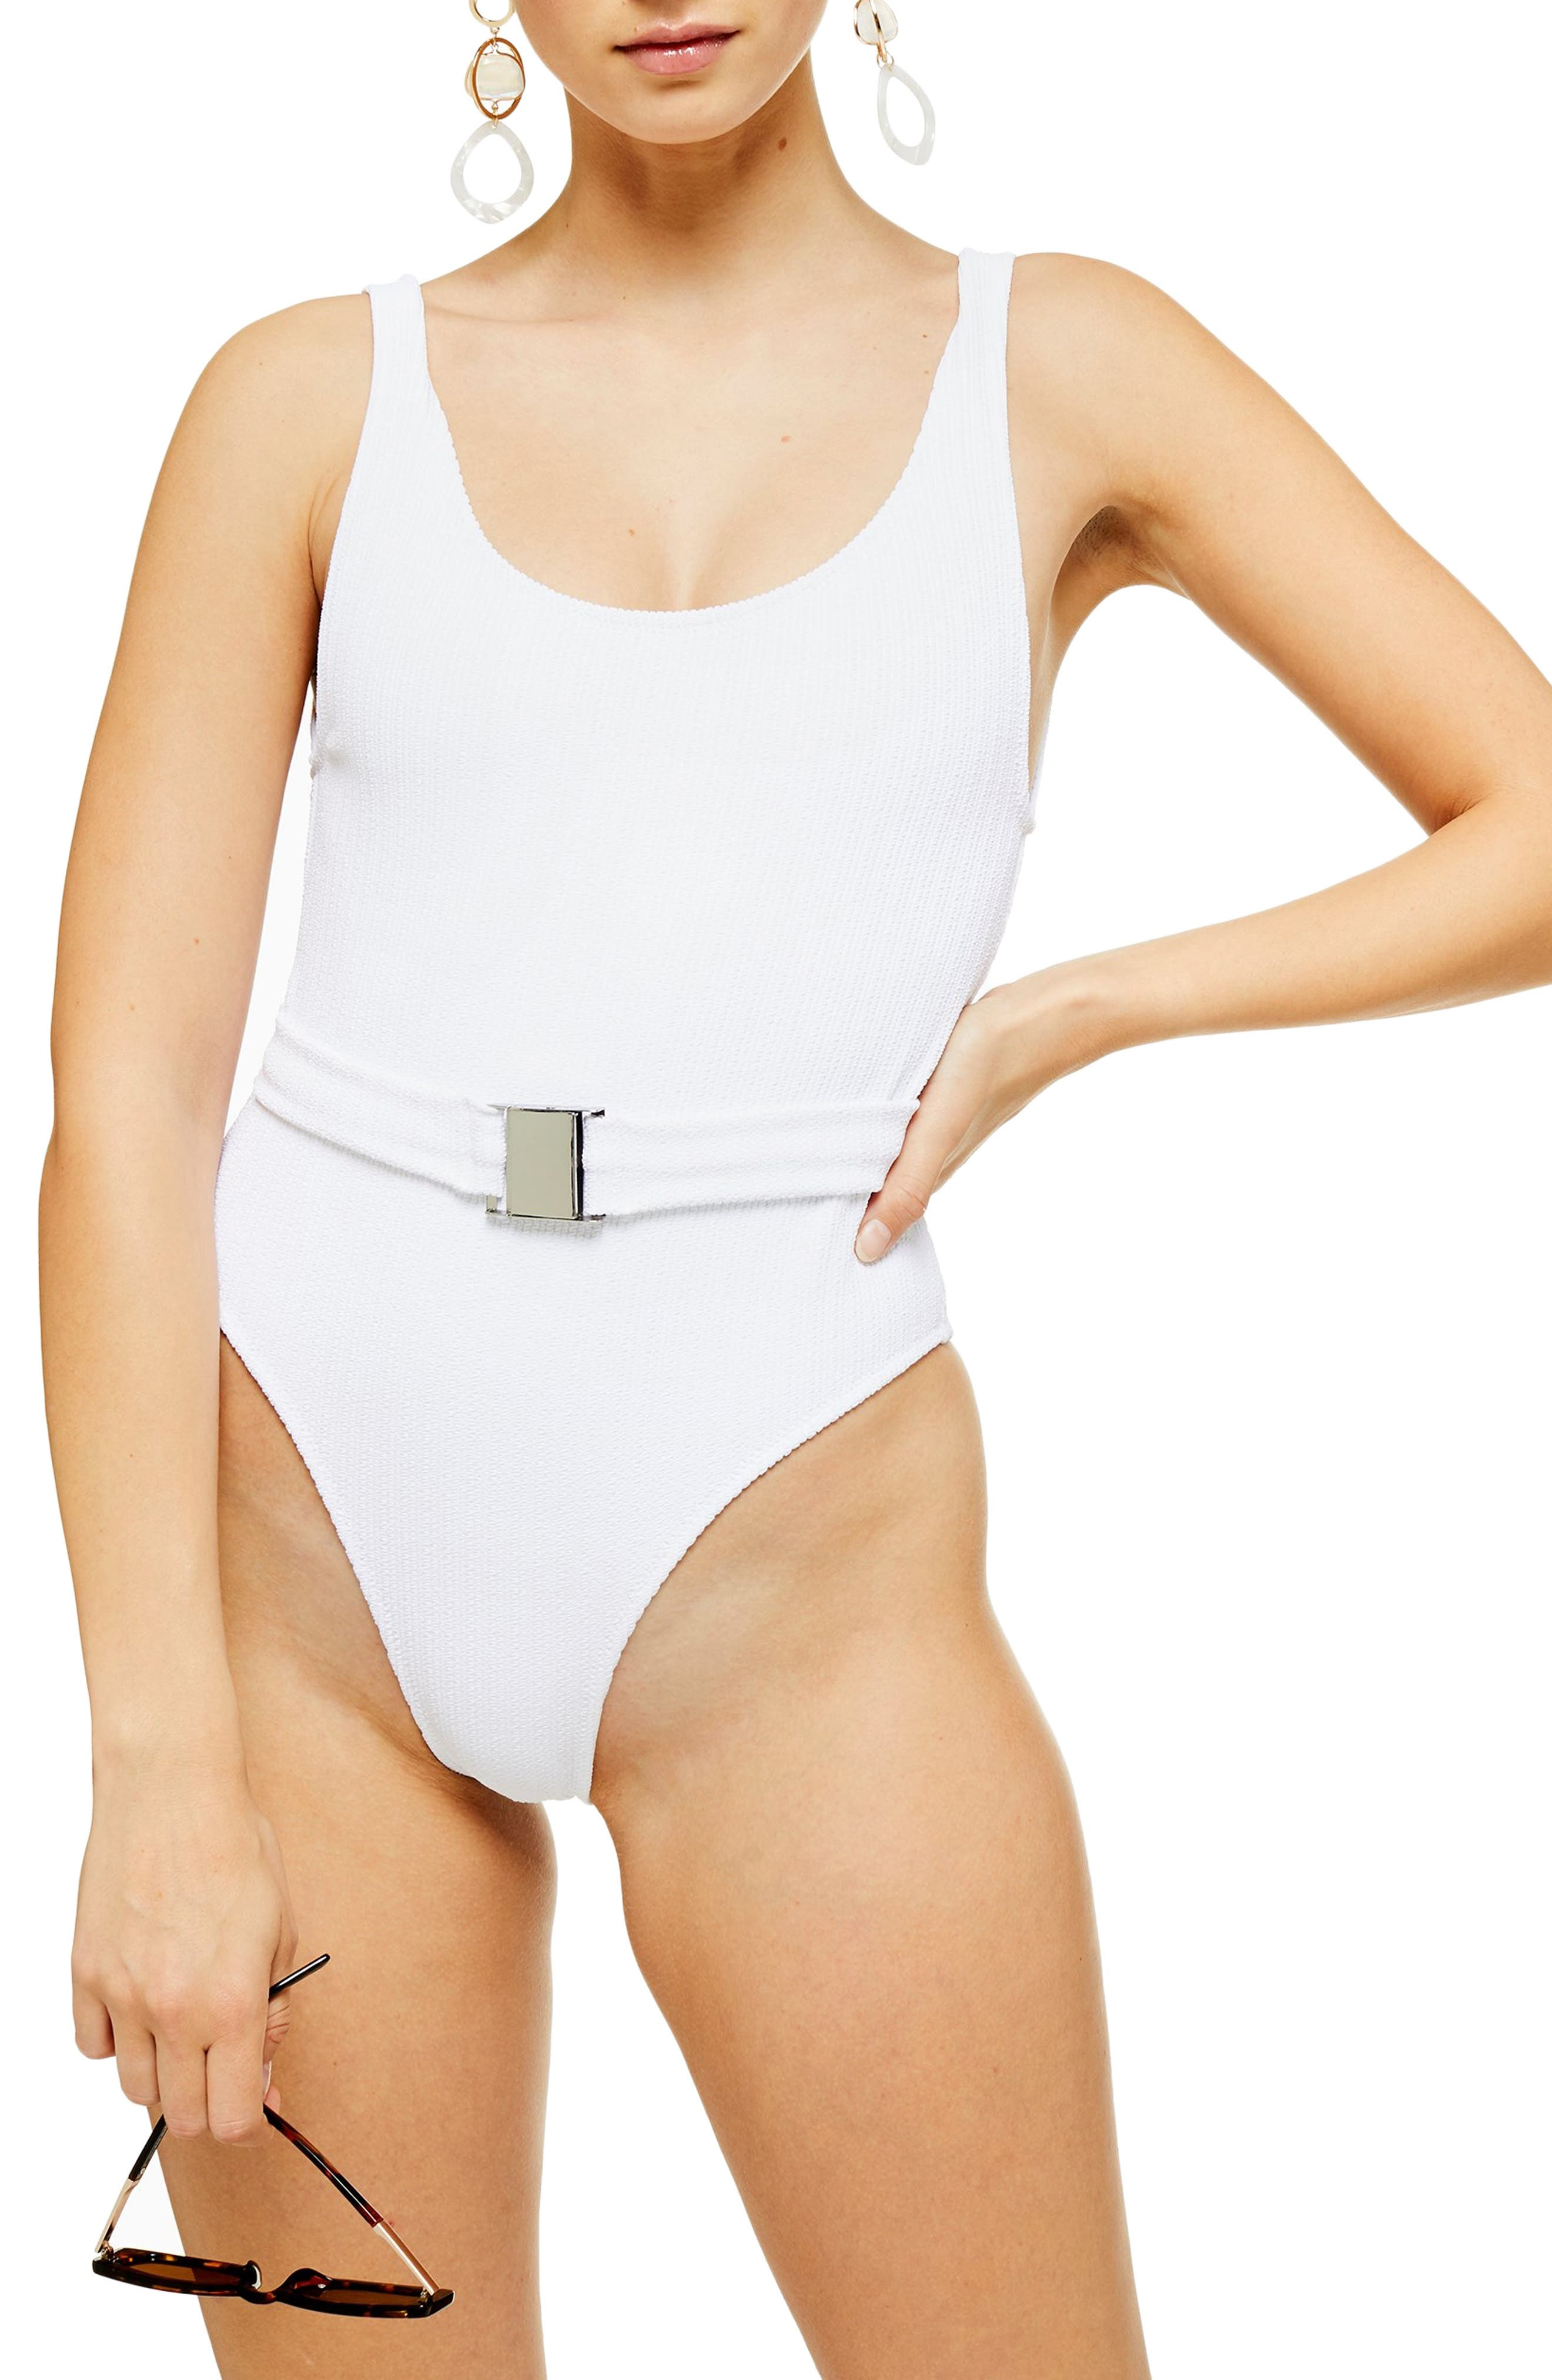 Topshop Crinkled Belted One-Piece Swimsuit, US (fits like 00) - White